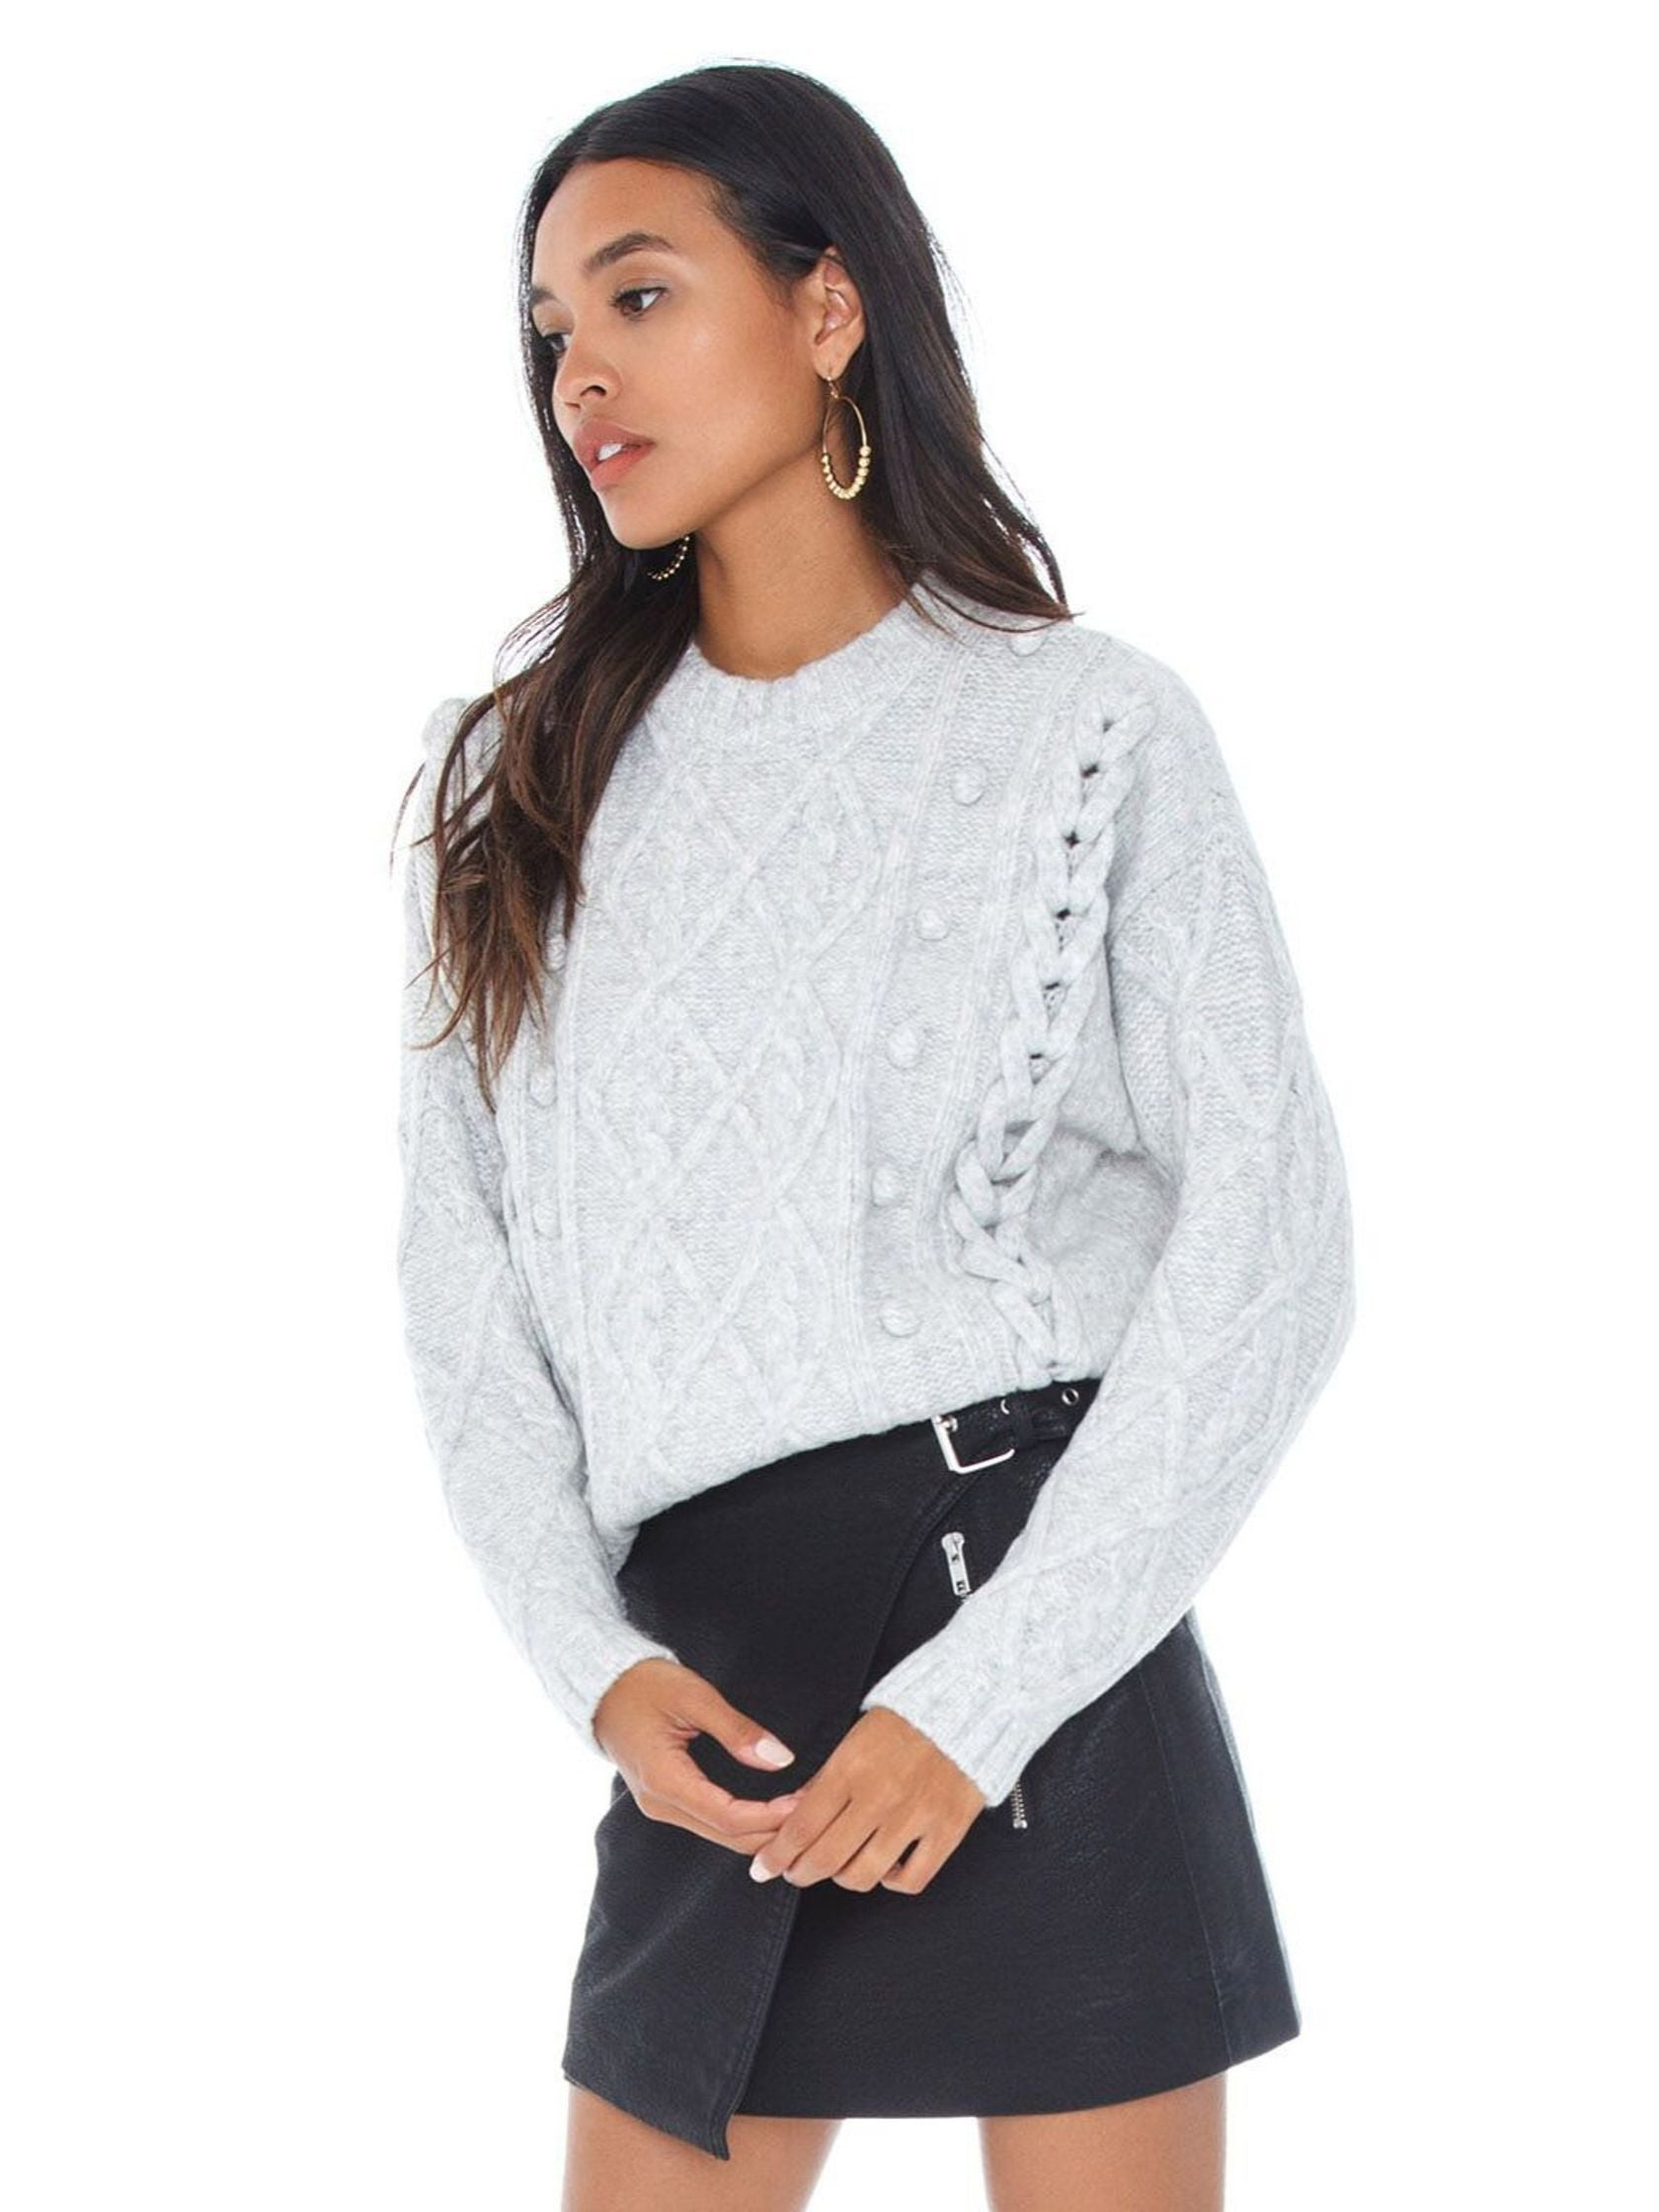 Women wearing a sweater rental from Line & Dot called Mila Sweater